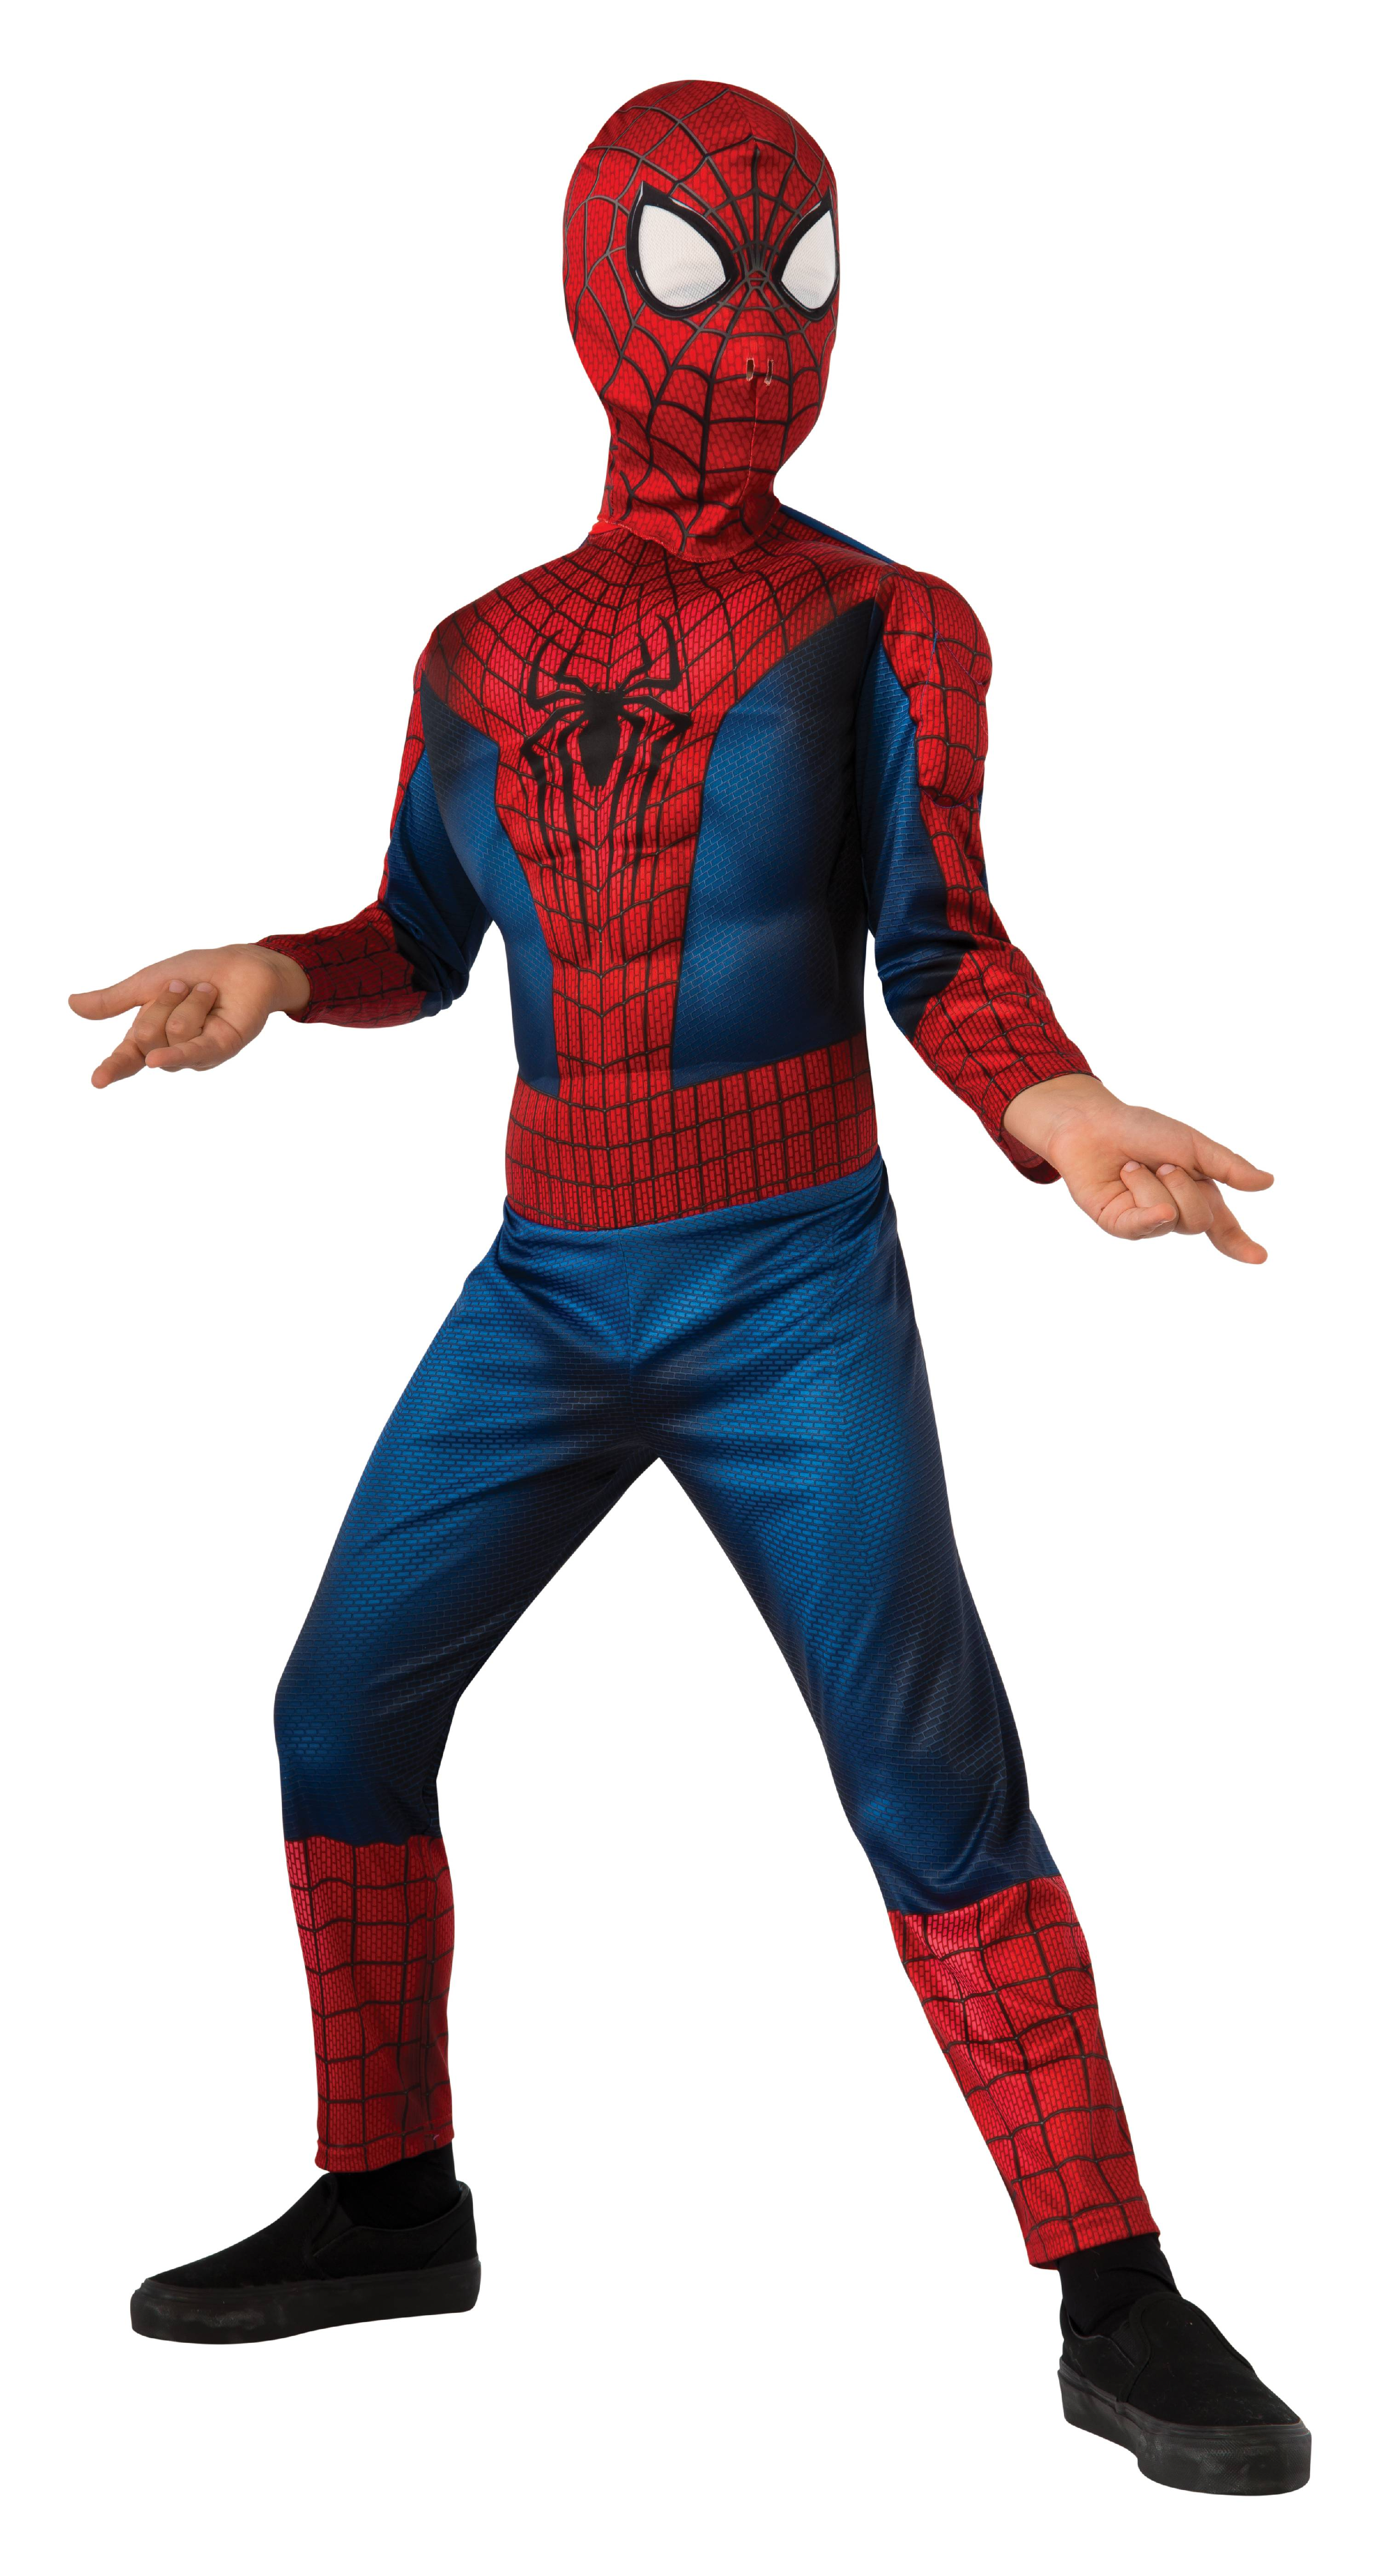 Shop for kids spiderman costume online at Target. Free shipping on purchases over $35 and save 5% every day with your Target REDcard.